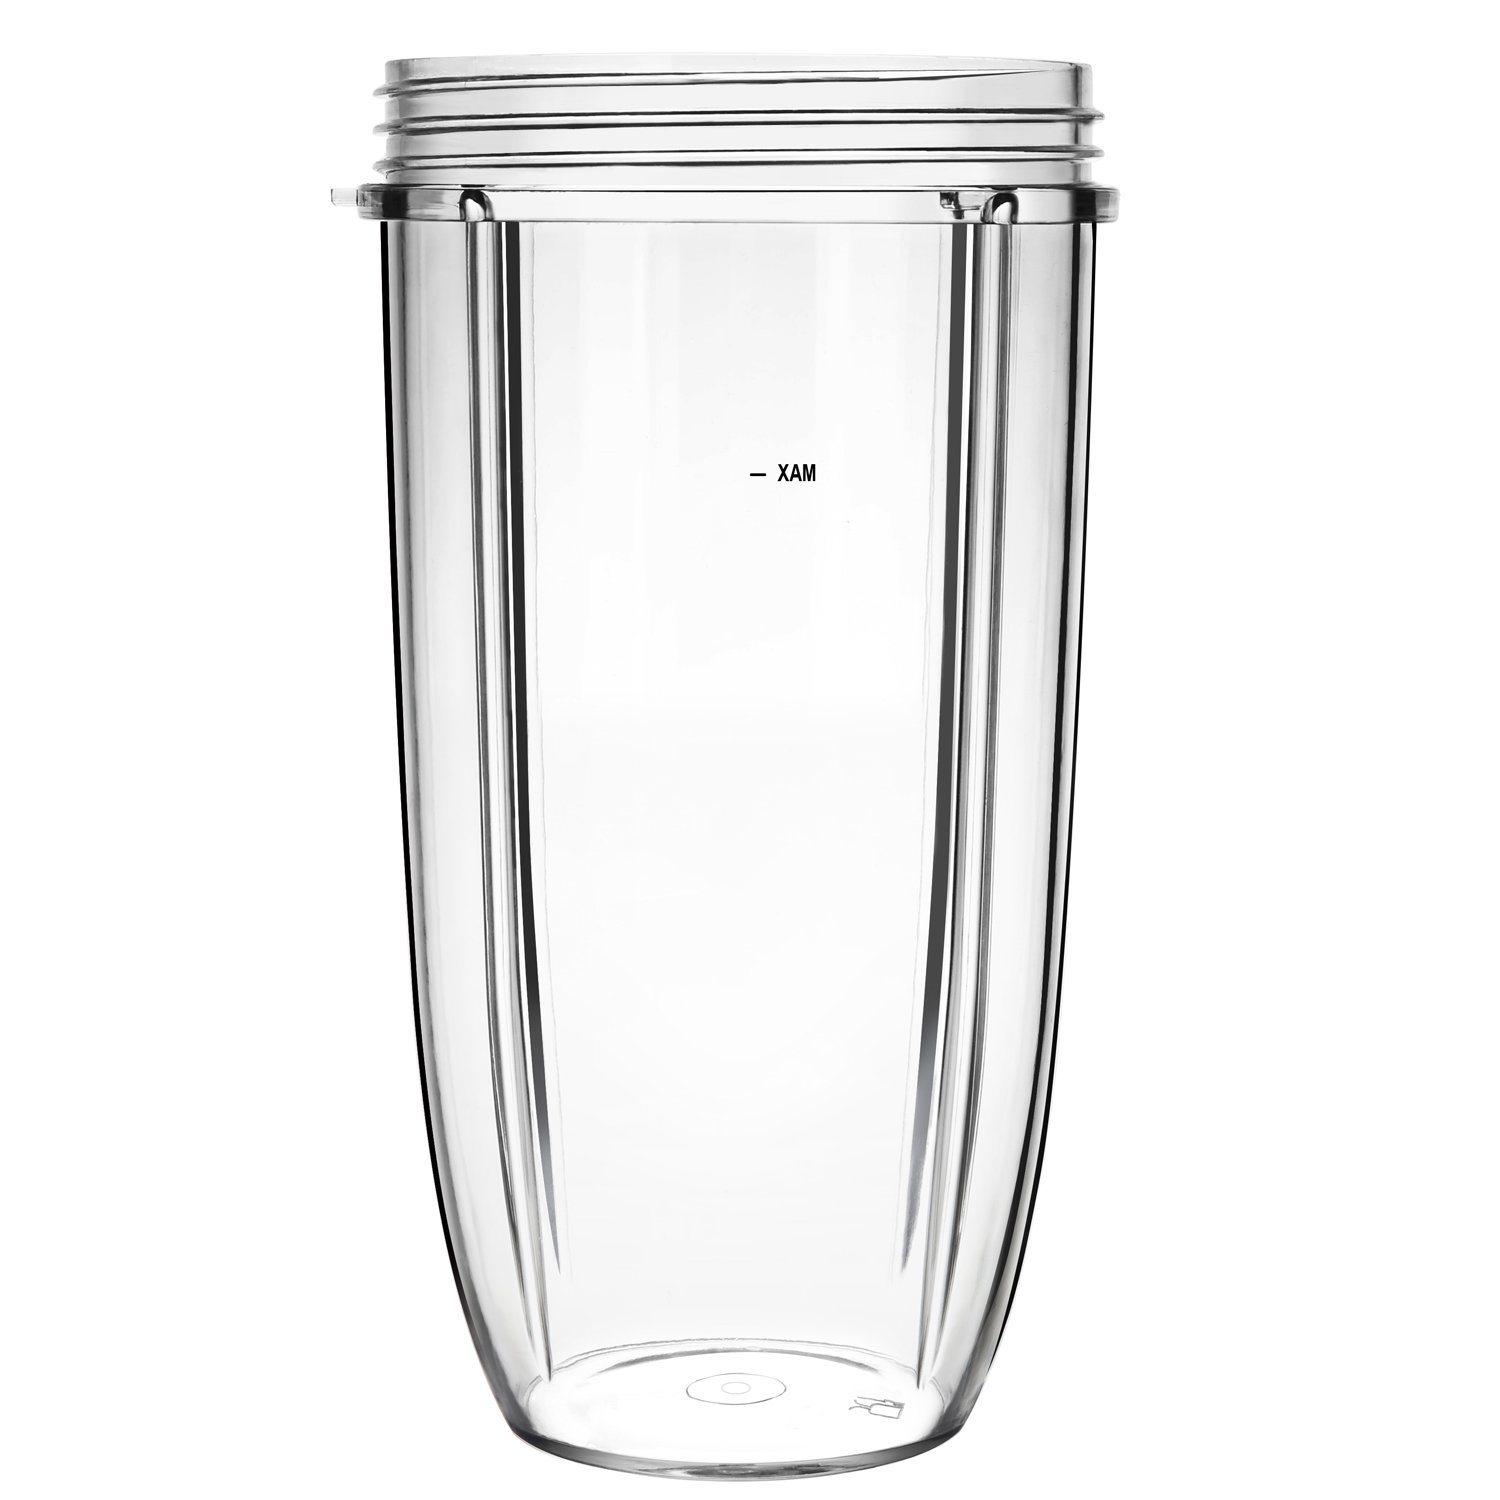 32oz Replacement Mug Tall Large Cup for Nutri Bullet Blender Juicer Mixer Part Accessory